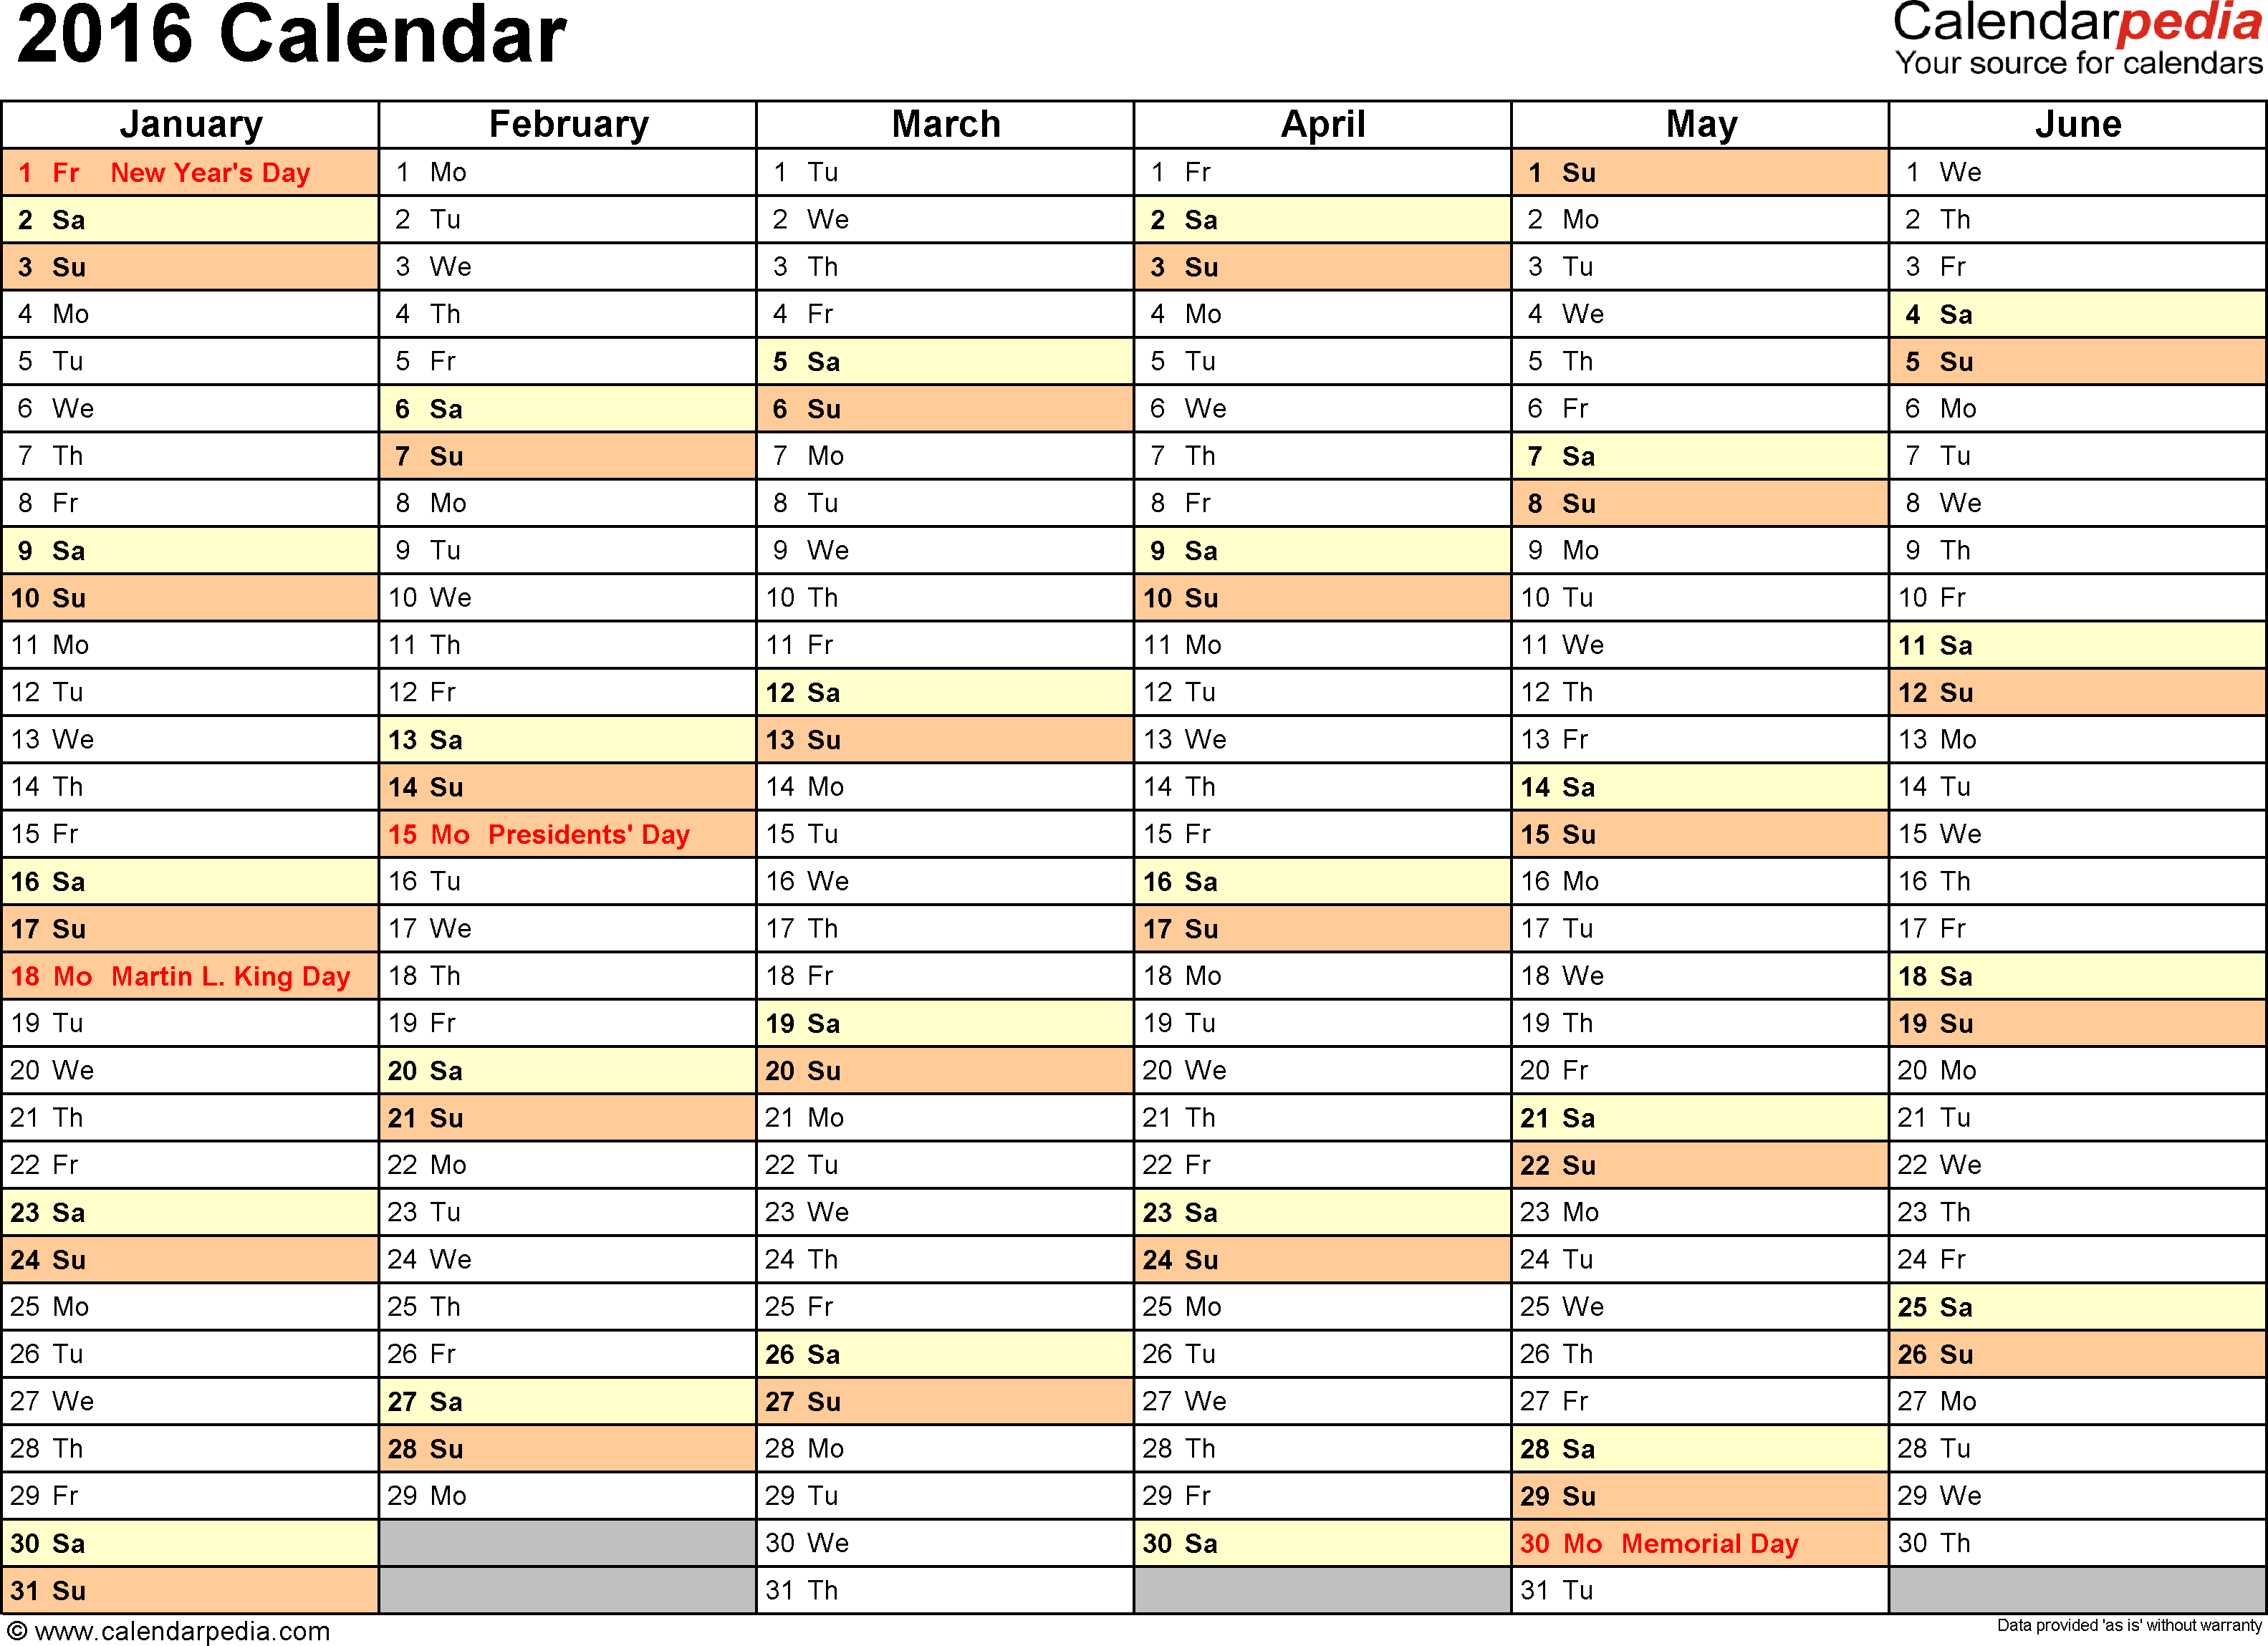 Ediblewildsus  Winning  Calendar  Download  Free Printable Excel Templates Xls With Luxury Template   Calendar For Excel Months Horizontally  Pages Landscape Orientation With Easy On The Eye Excel Best Fit Curve Also Dashboards For Excel In Addition Isna Function Excel And Intercept Excel As Well As Excel Panes Additionally Find Correlation In Excel From Calendarpediacom With Ediblewildsus  Luxury  Calendar  Download  Free Printable Excel Templates Xls With Easy On The Eye Template   Calendar For Excel Months Horizontally  Pages Landscape Orientation And Winning Excel Best Fit Curve Also Dashboards For Excel In Addition Isna Function Excel From Calendarpediacom